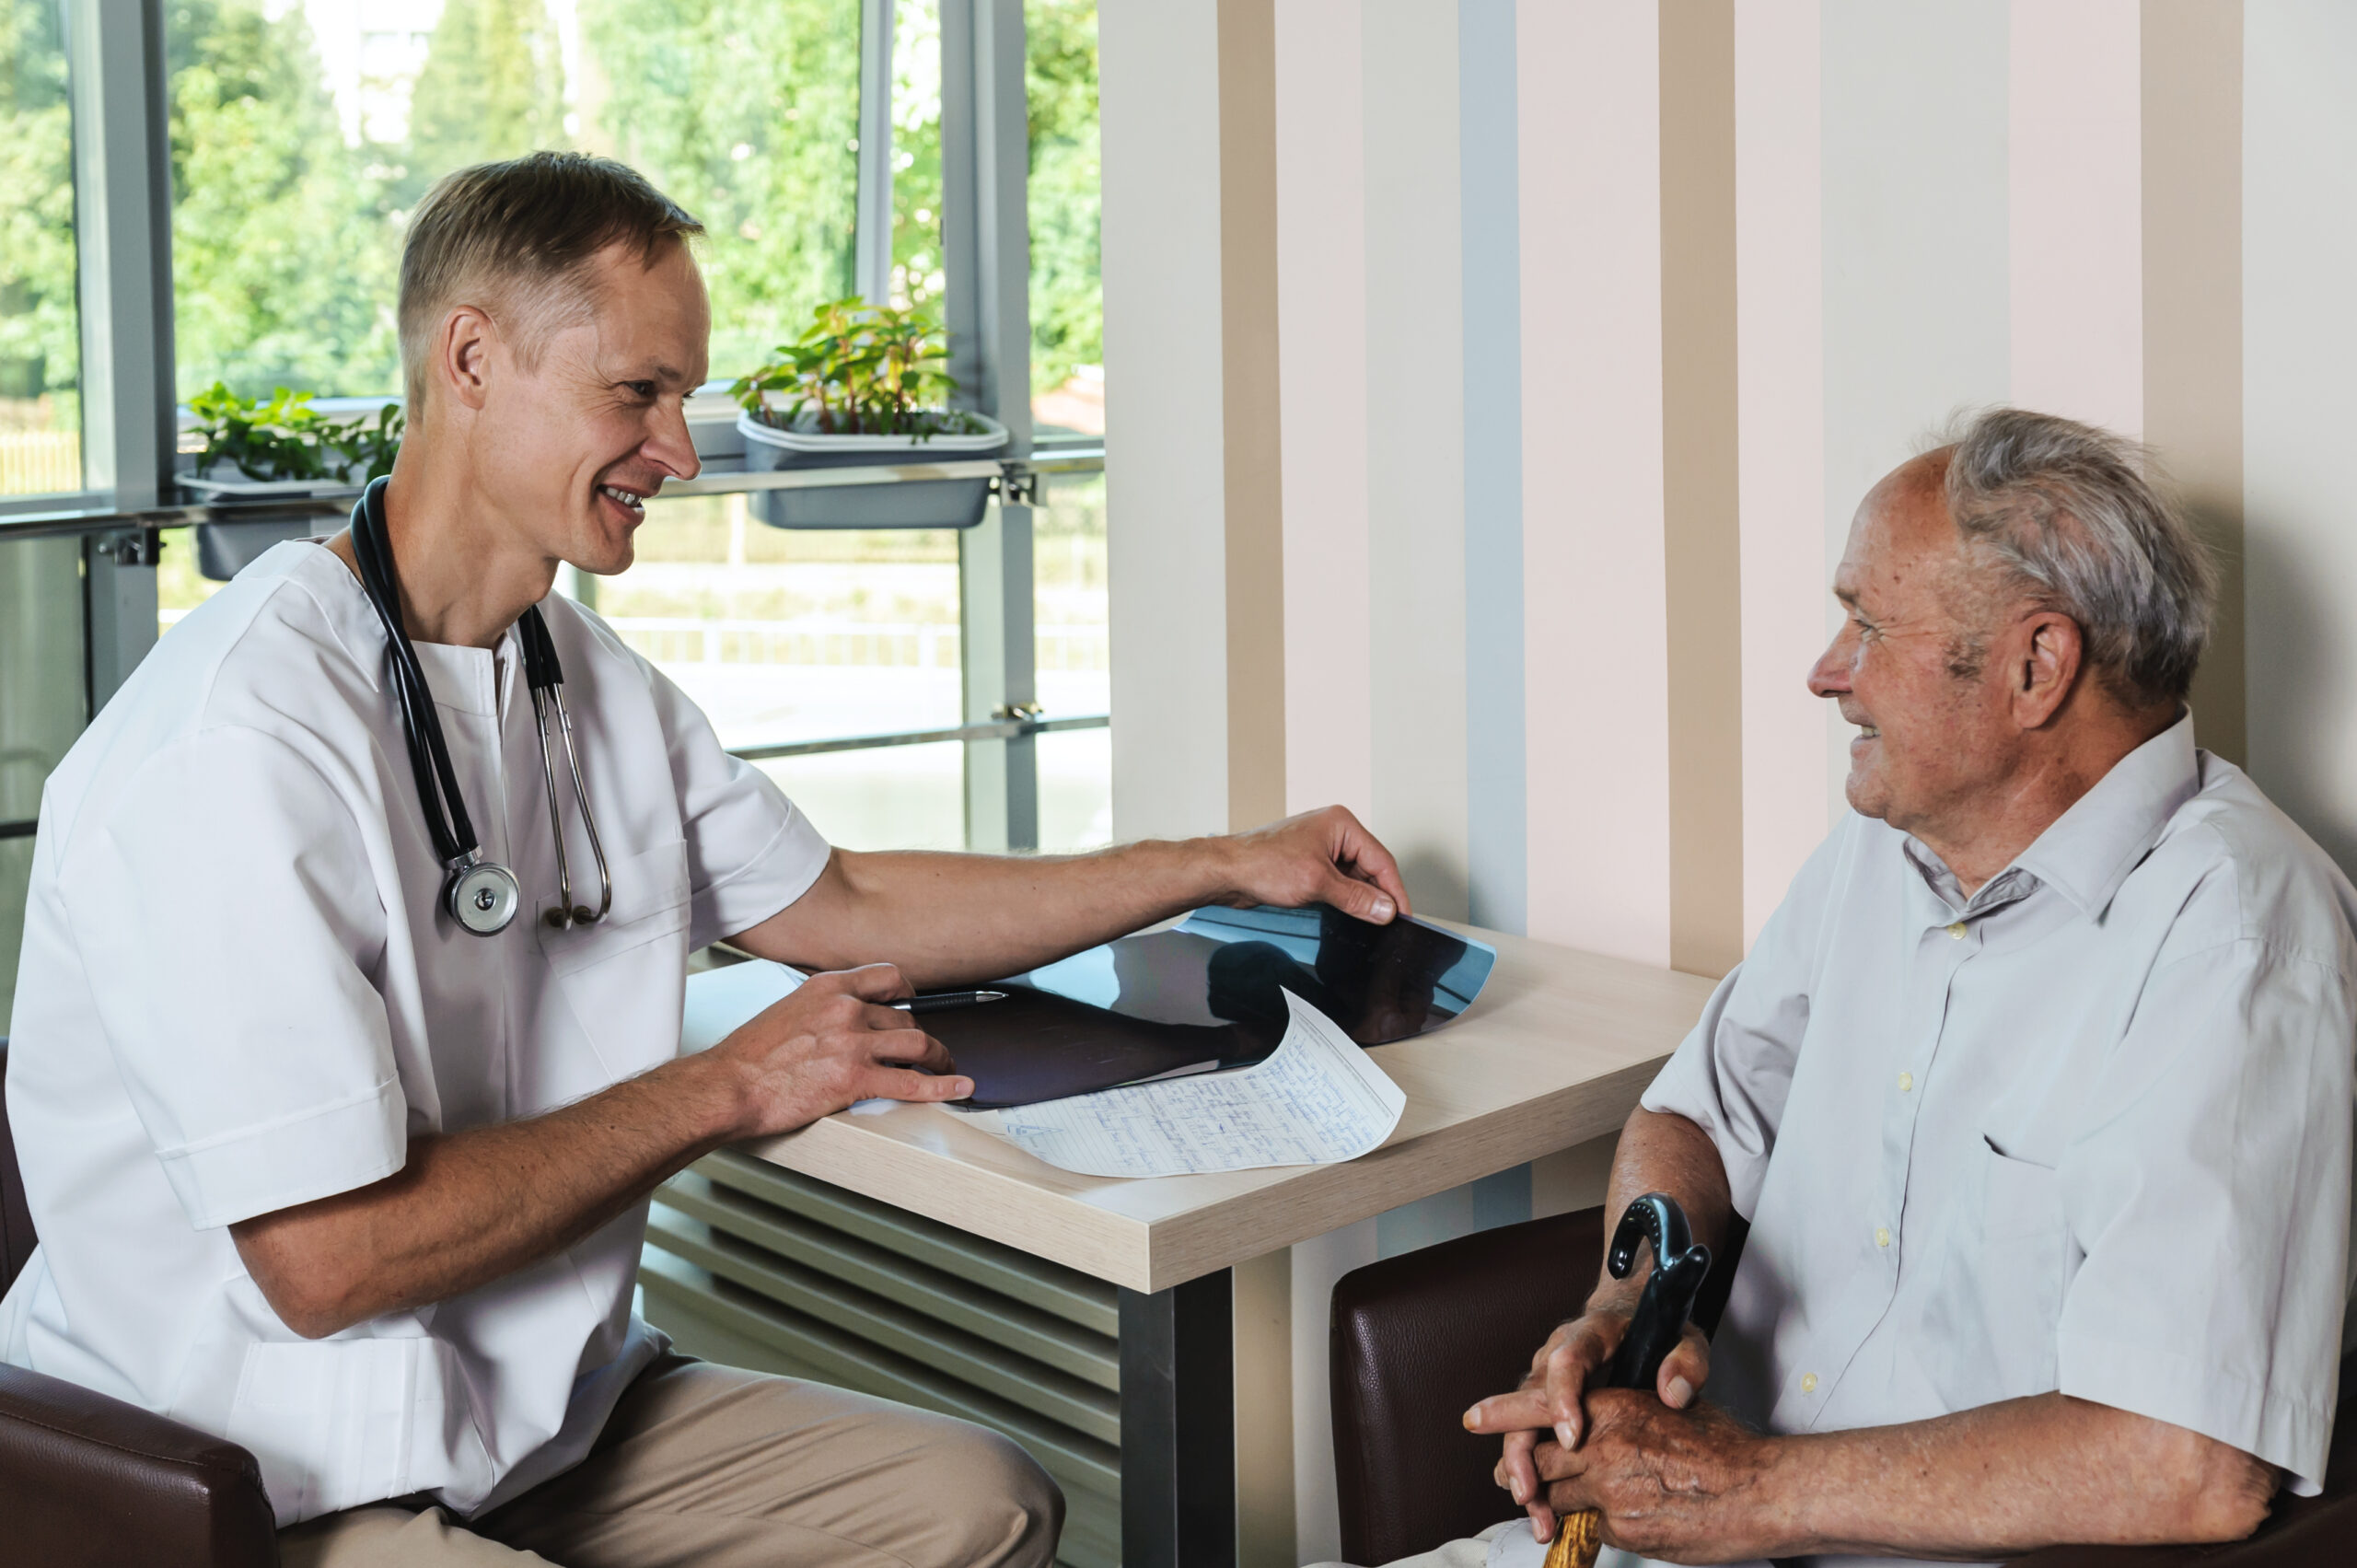 Medical consultation between physician and patient following mobile diagnostic care